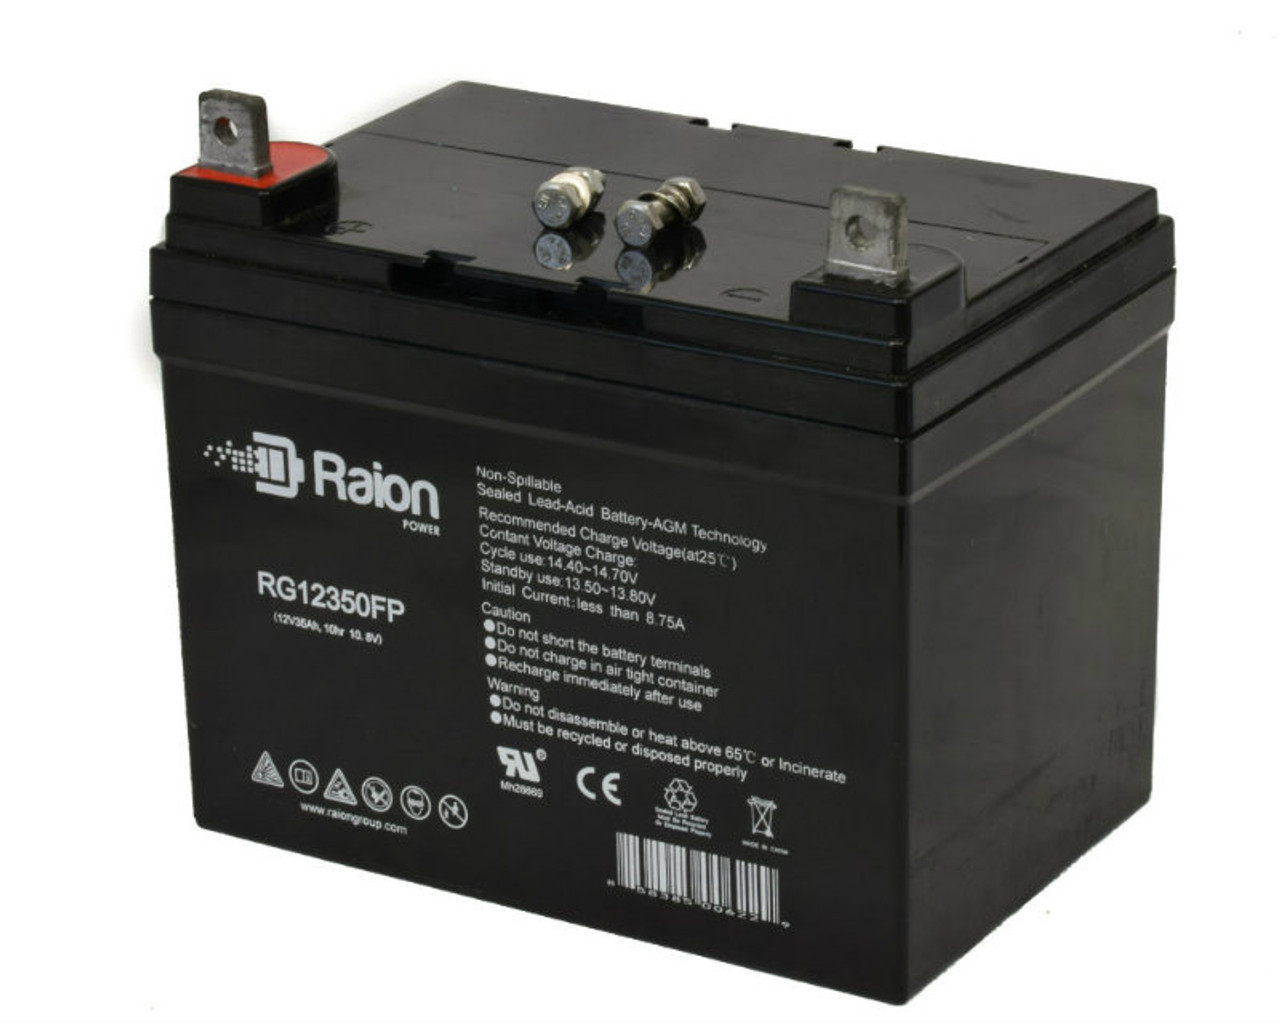 RG12350FP Sealed Lead Acid Battery Pack For Invacare Booster Mobility Scooter